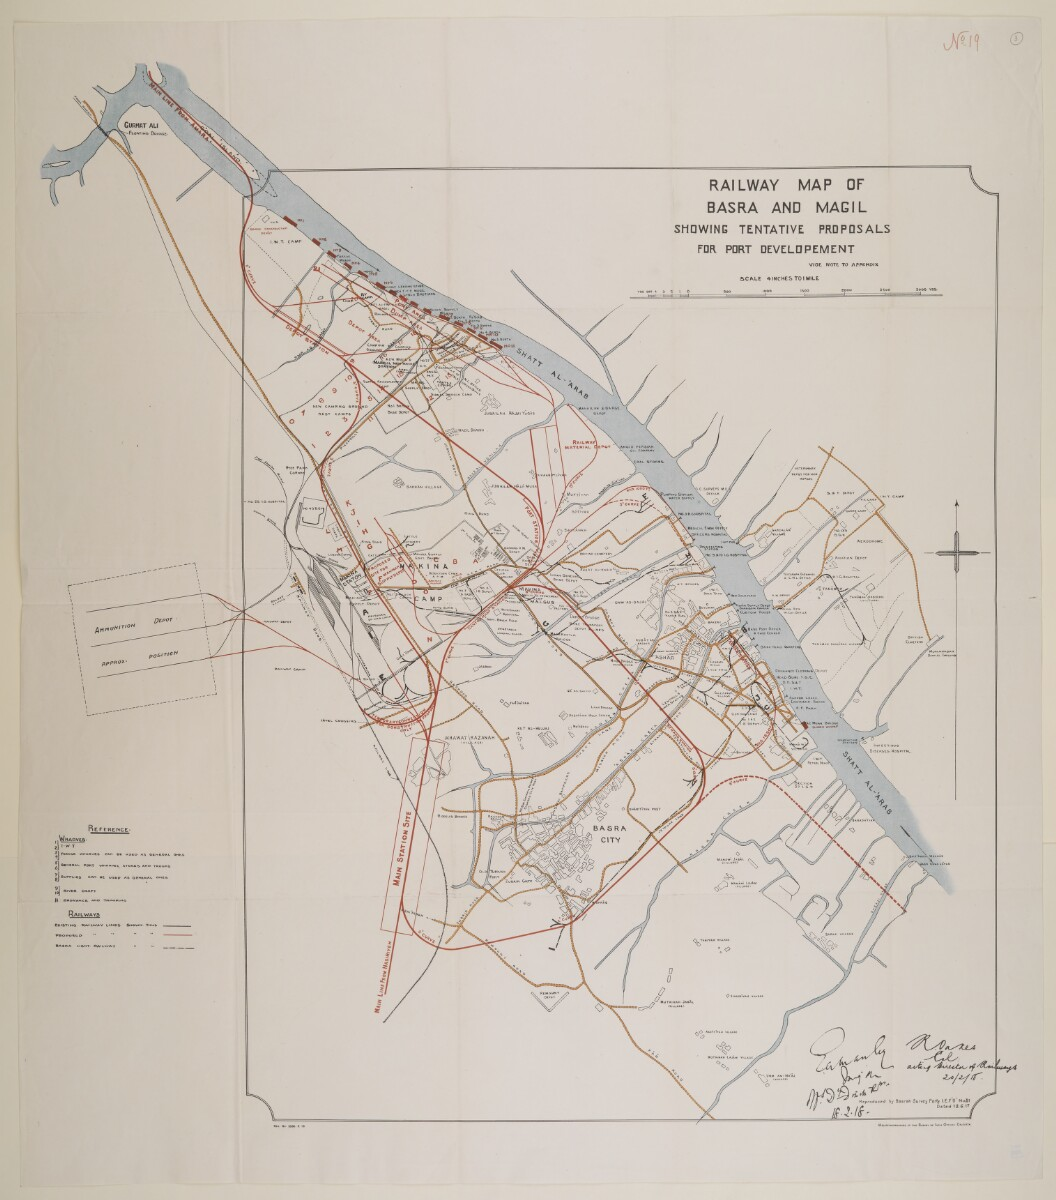 Mesopotamian Transport Commission. Report of the Commission ... on map of istanbul, map of mogadishu, map of hankou, map of ramallah, map of karachi, map of kabul, map of irbil, map of sulaymaniyah, map of shuwaikh port, map of jeddah, map of ormuz, map of kurdish people, map of bukhara, map of fustat, map of riyadh, map of zagros mountains, map of tel aviv, map of delhi, map of samarkand, map of beirut,